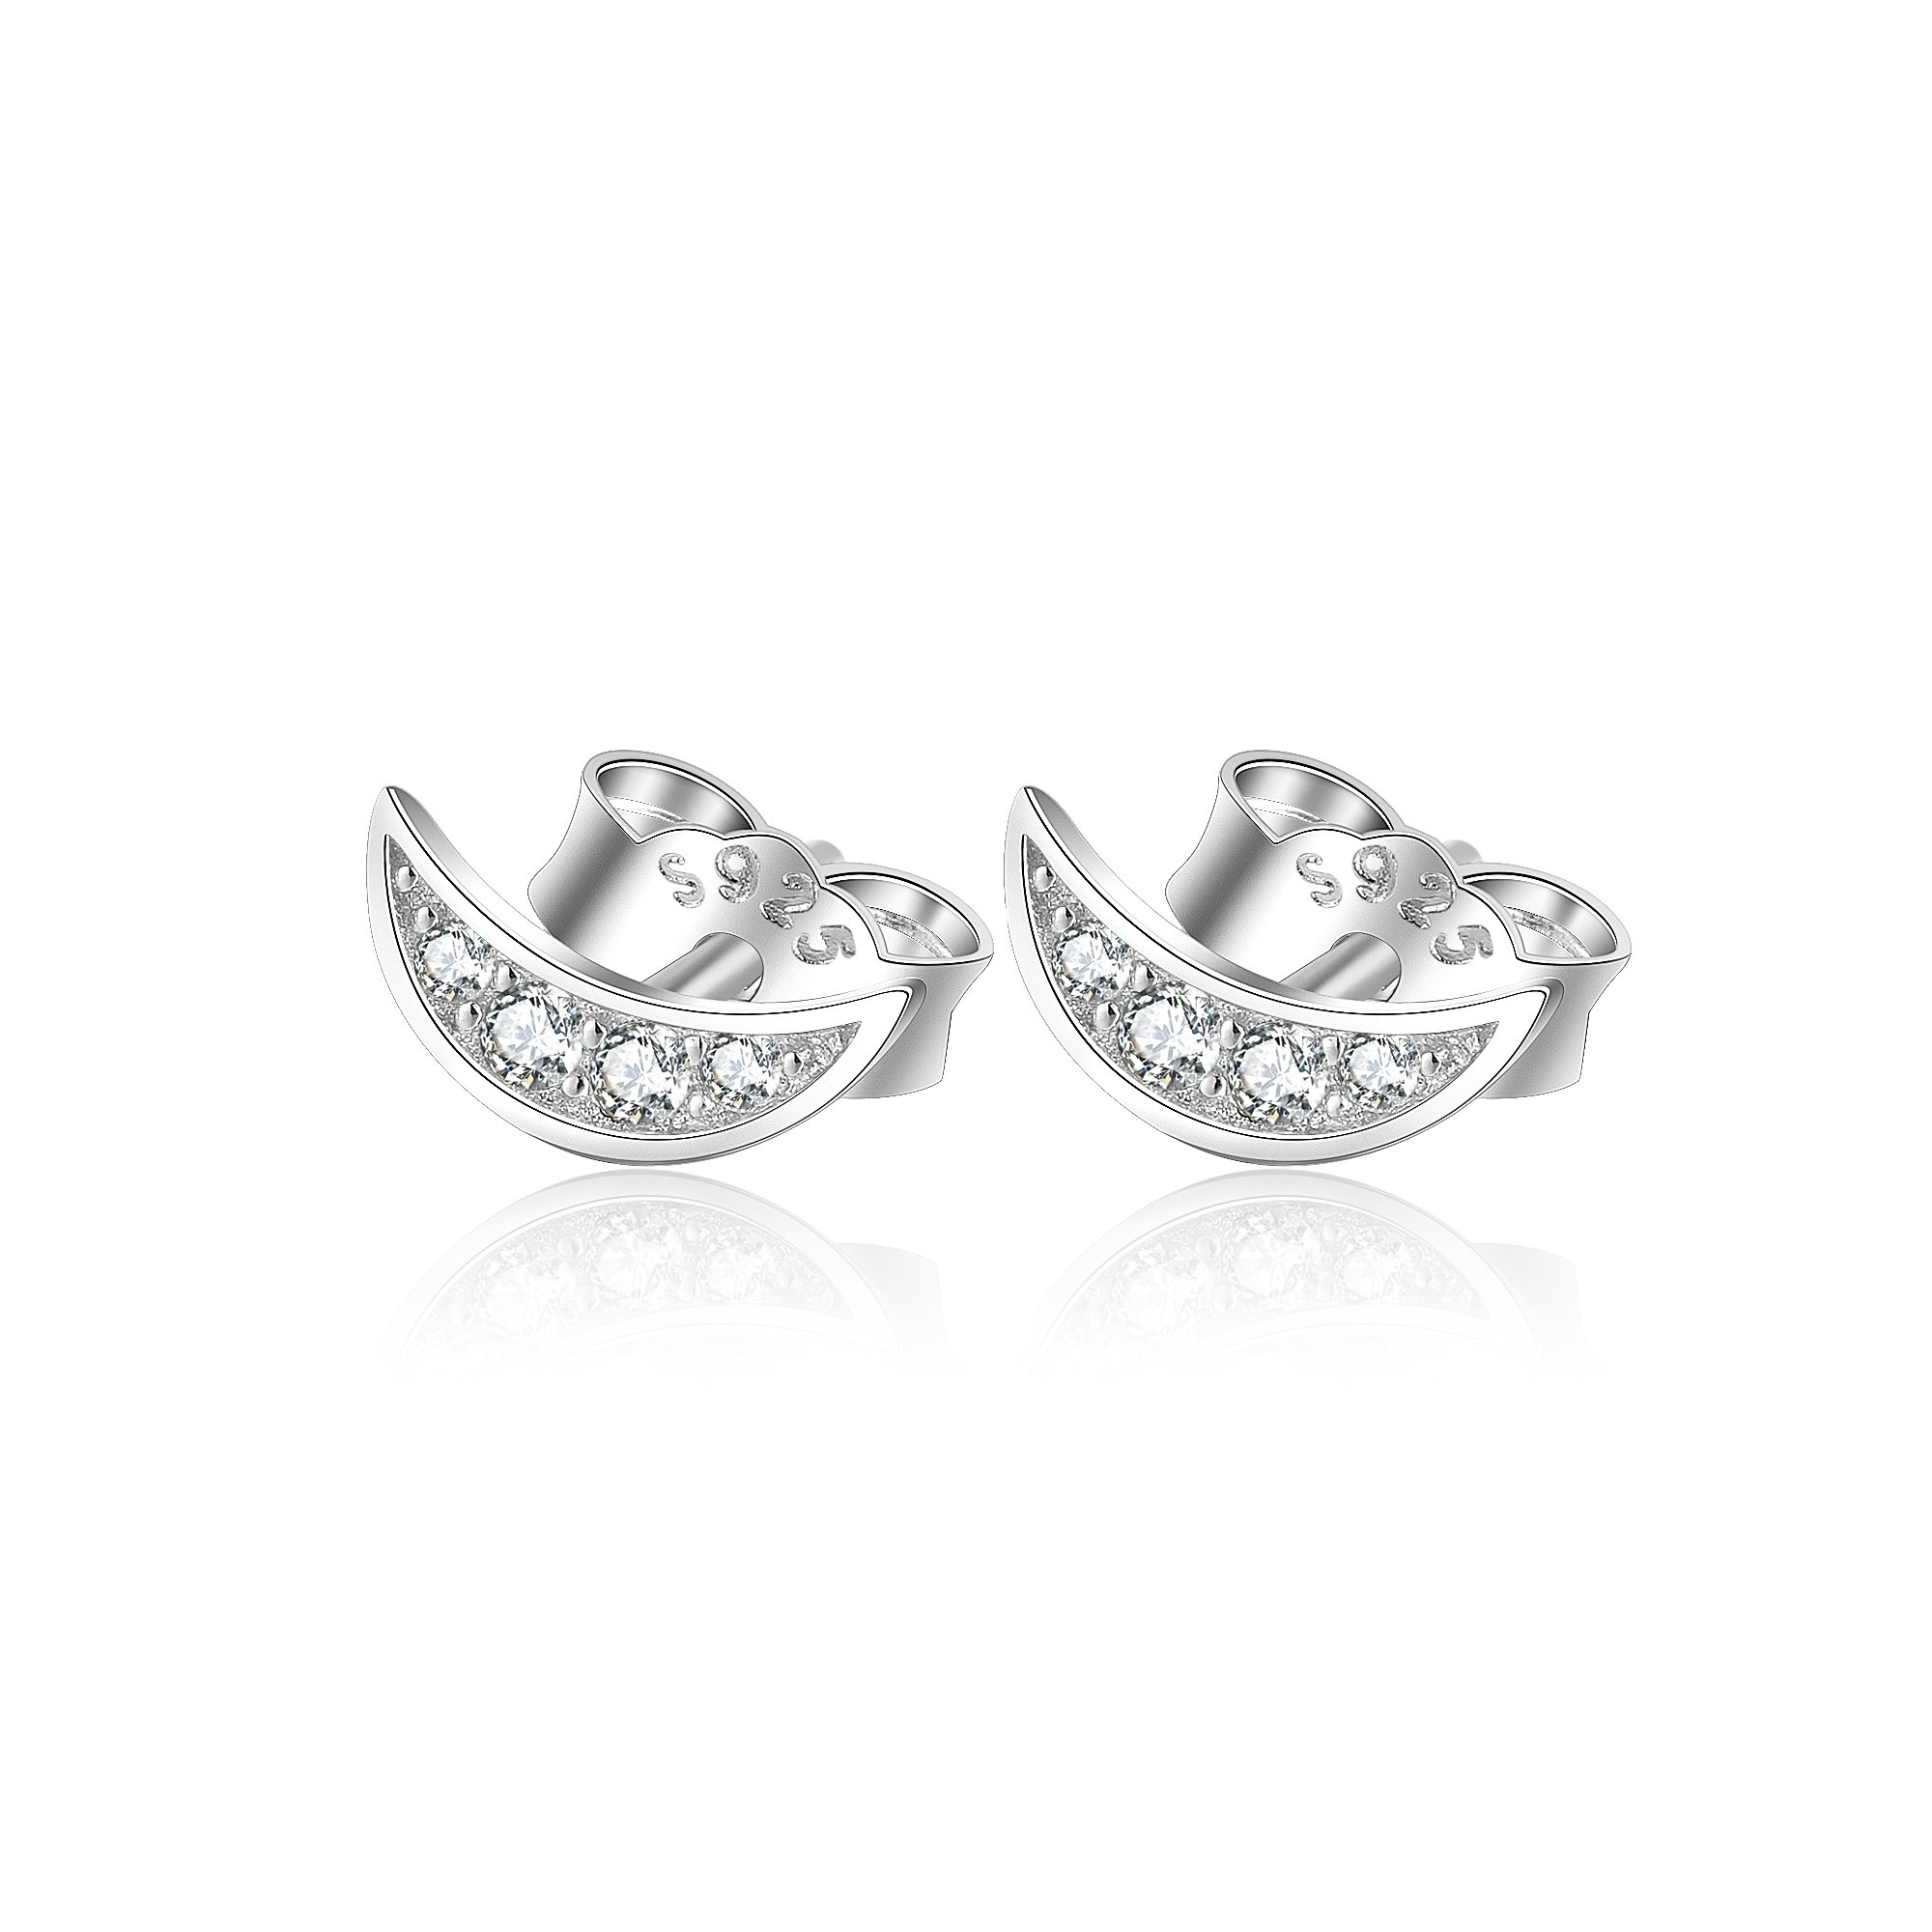 Moon Stud Earrings Sterling Silver, Cubic Zirconia Moon Earrings for Women Girls (white-gold-plated-silver)